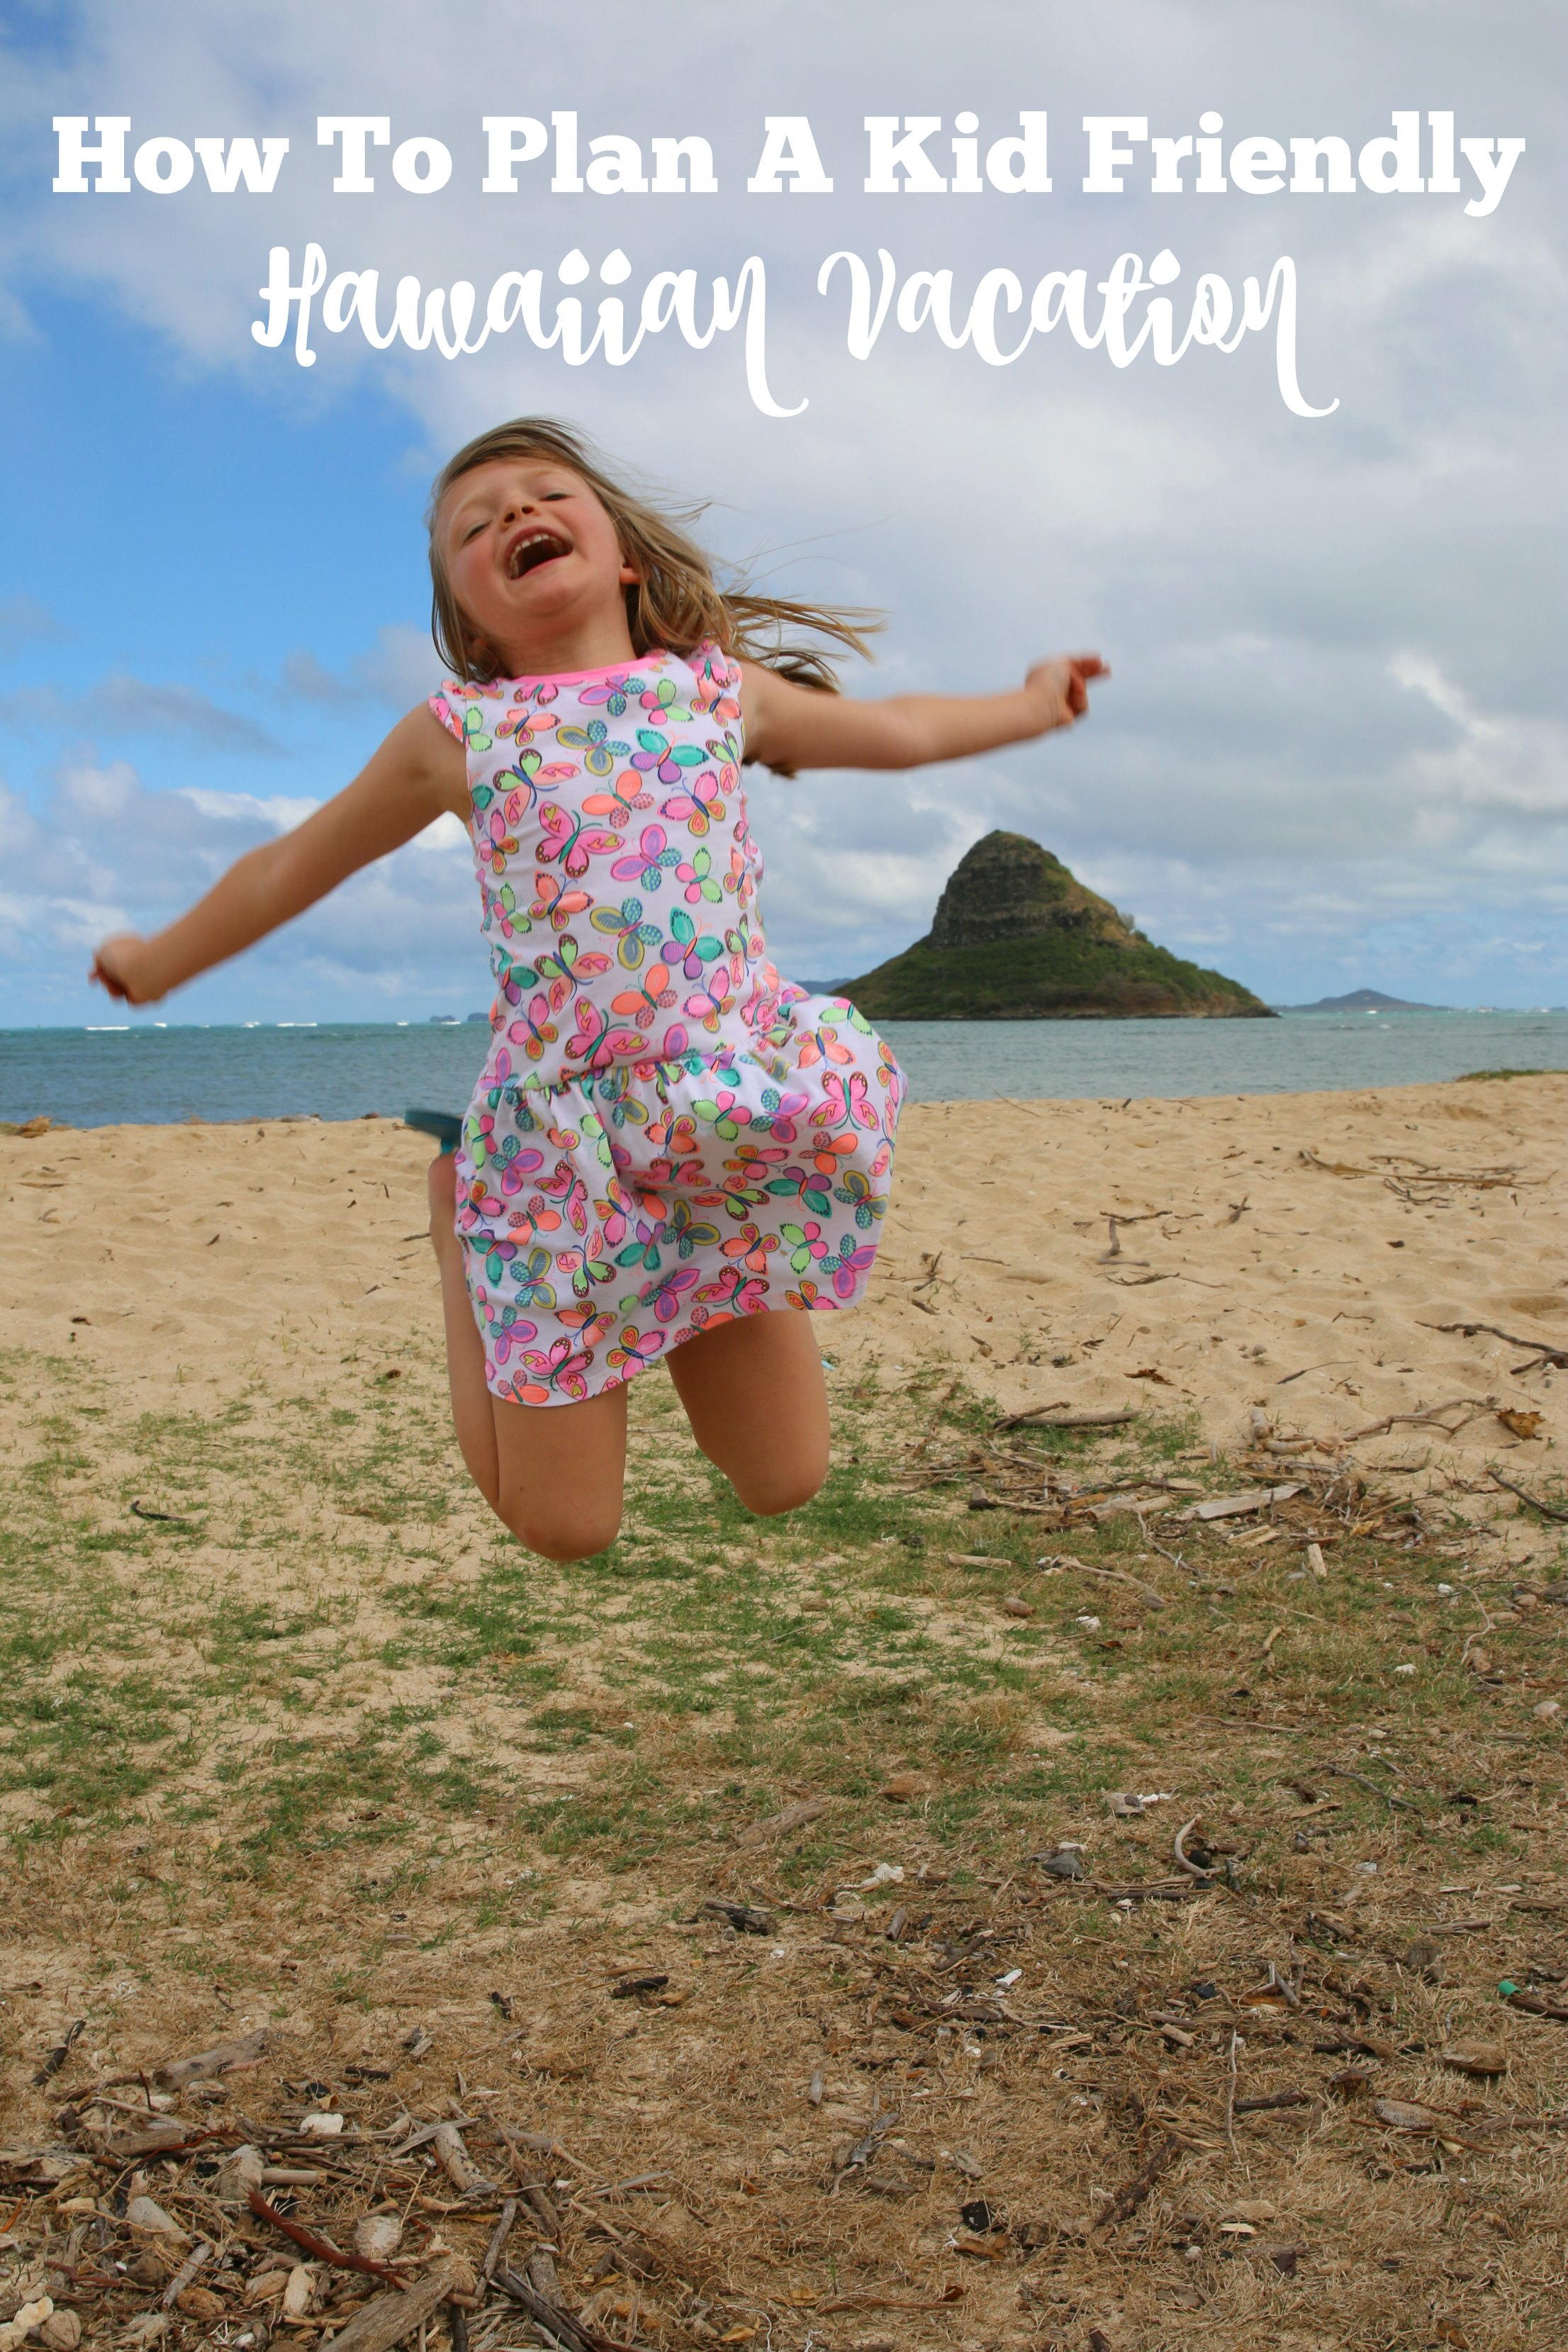 How to plan a kid friendly Hawaiian vacation